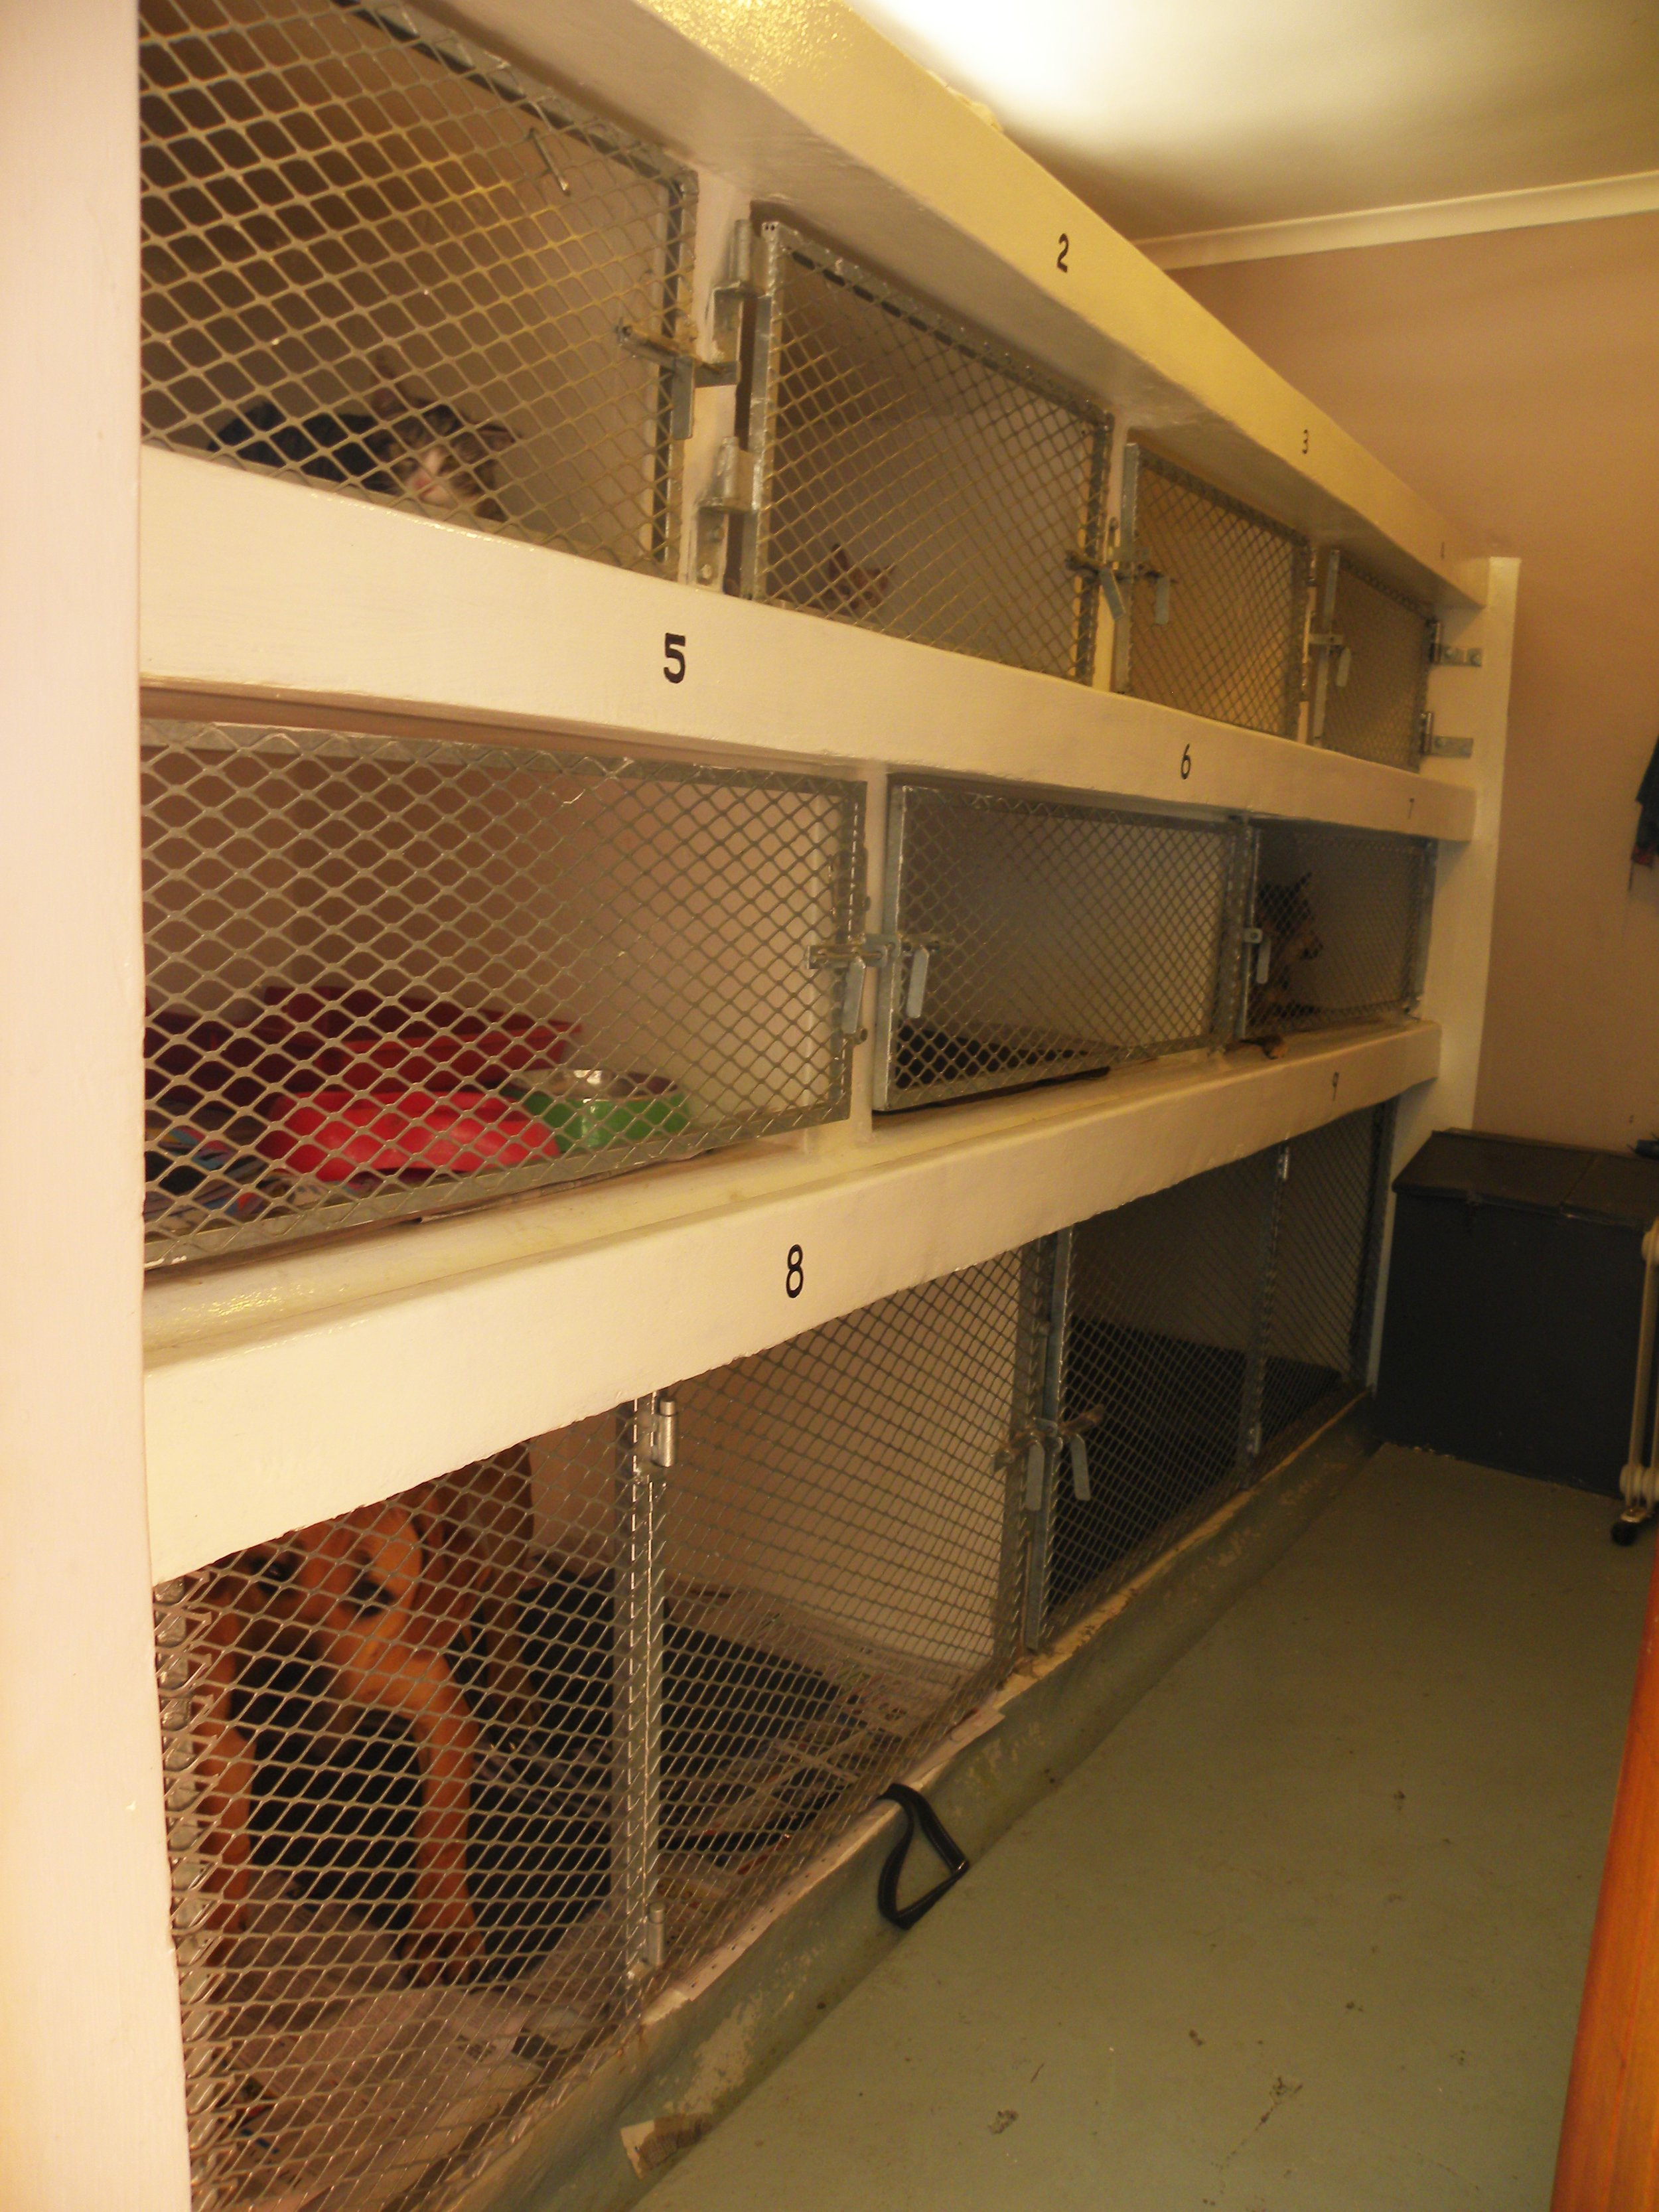 KENNELS WITH HEATER AND PADDED BEDDING